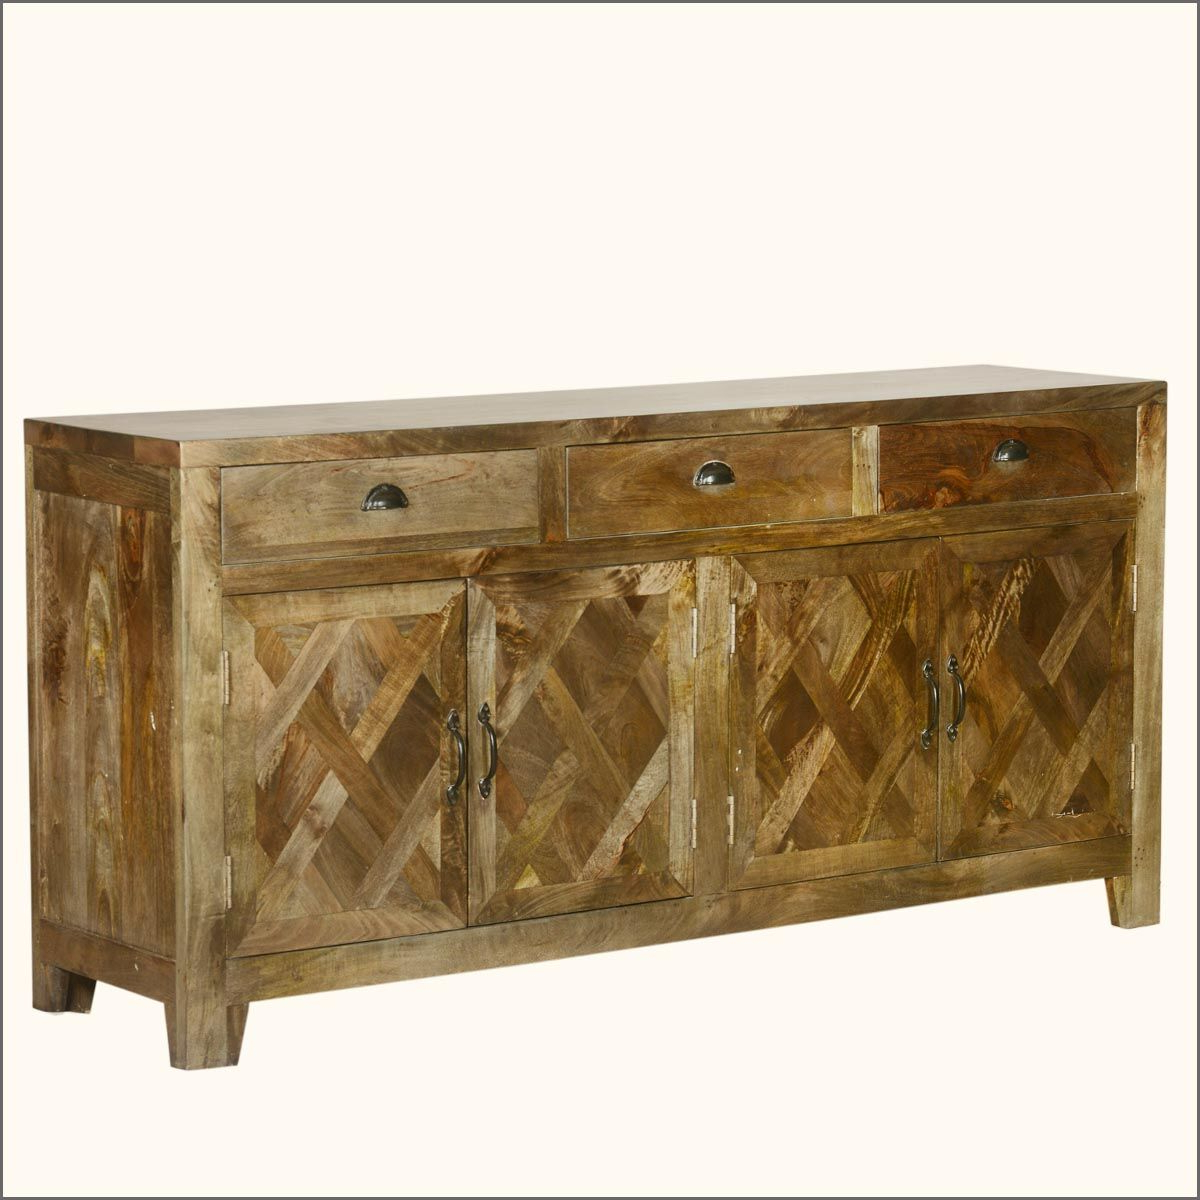 Parquet Sideboards Intended For Latest Parquet Farmhouse Mango Wood Rustic Sideboard Buffet Cabinet In  (View 9 of 20)